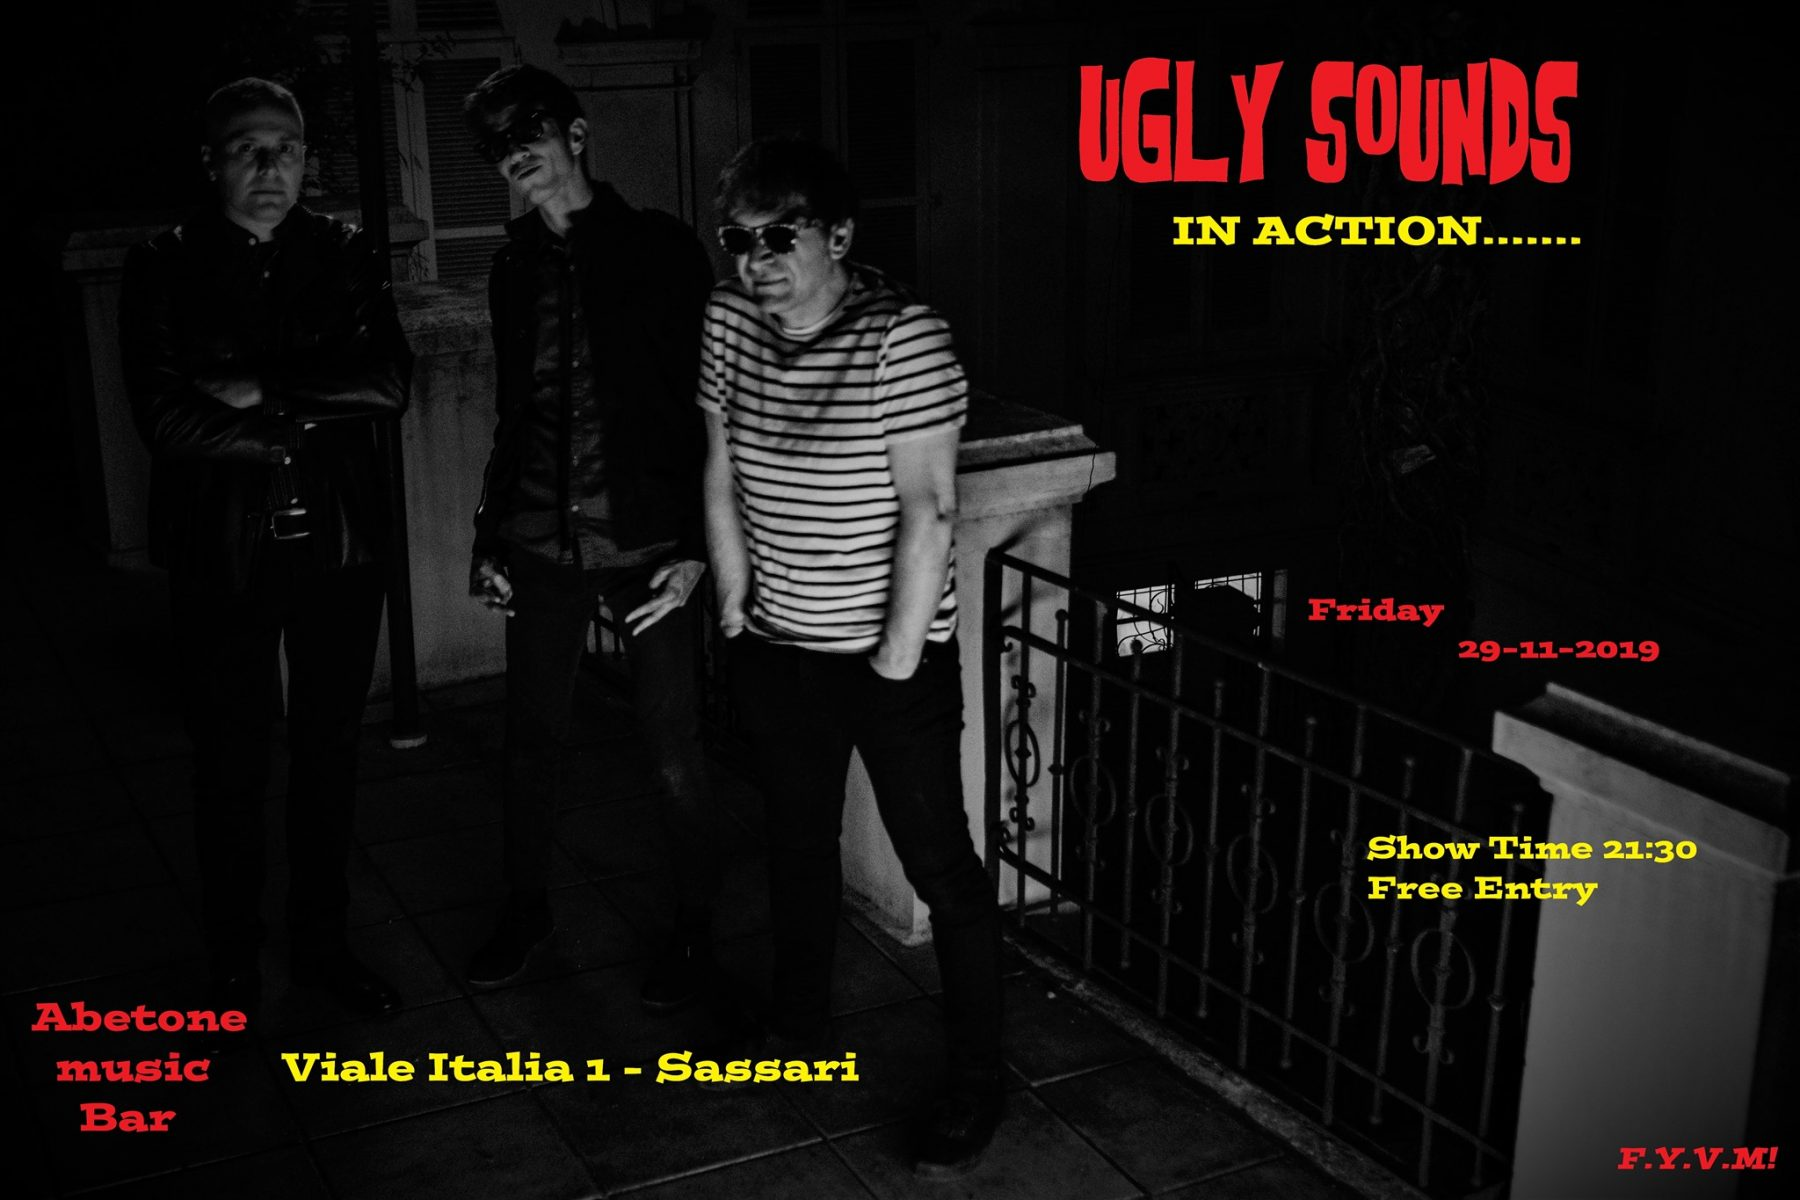 Abetone Friday Night - Ugly Sounds - Abetone Music Bar - Sassari - 29 novembre 2019 - eventi - 2019 - Sa Scena Sarda